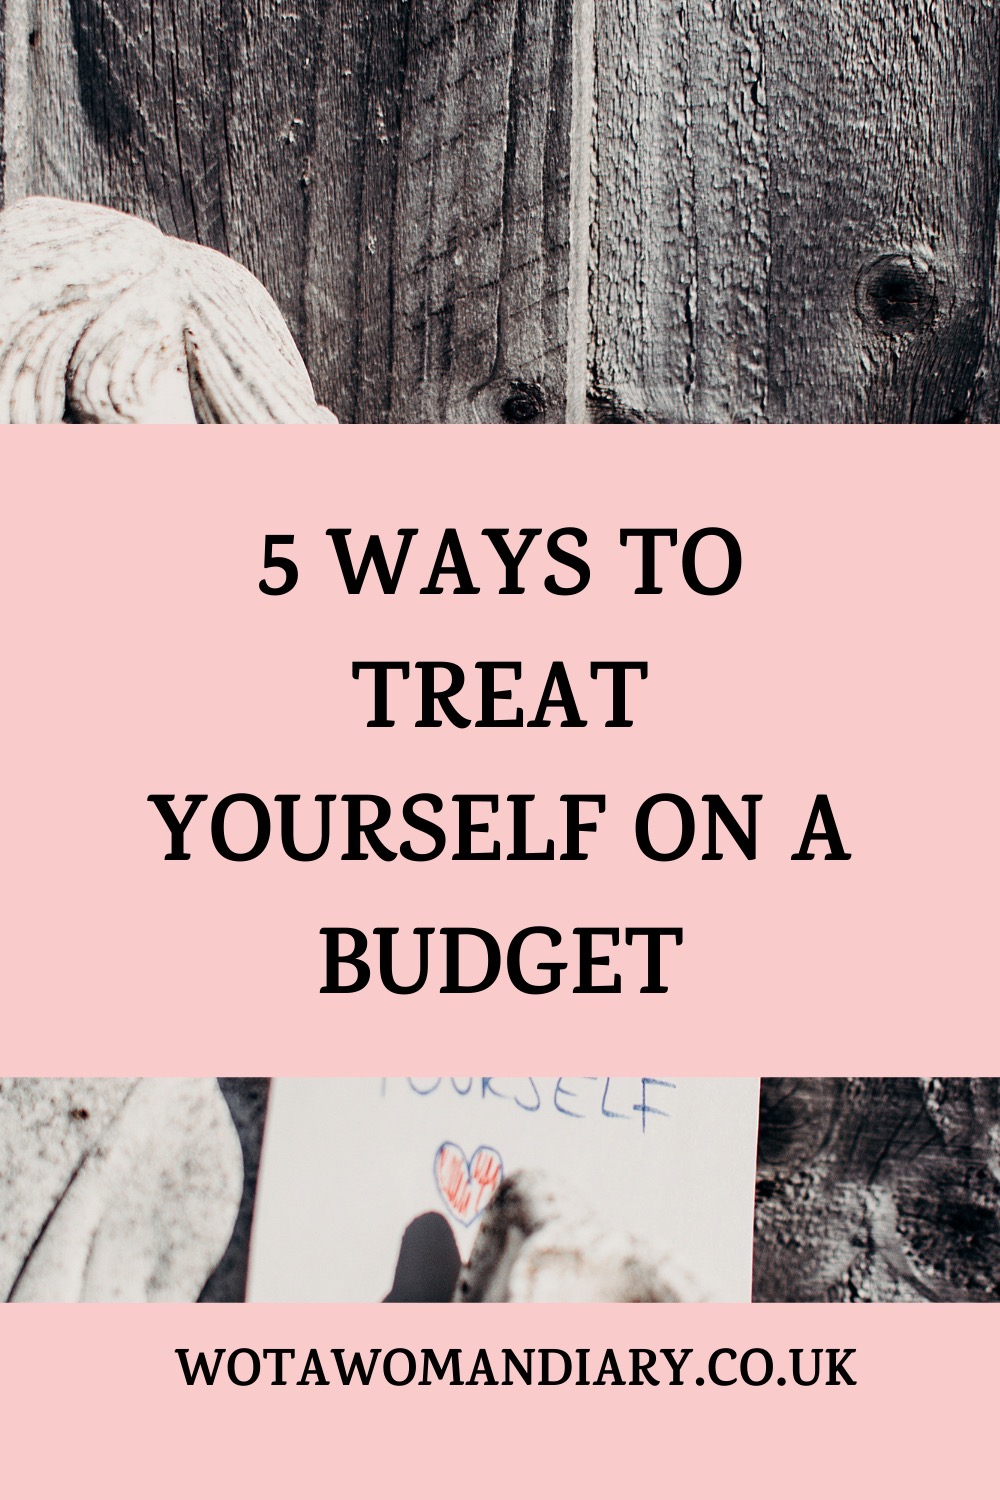 A text image saying 5 ways to treat yourself on a budget